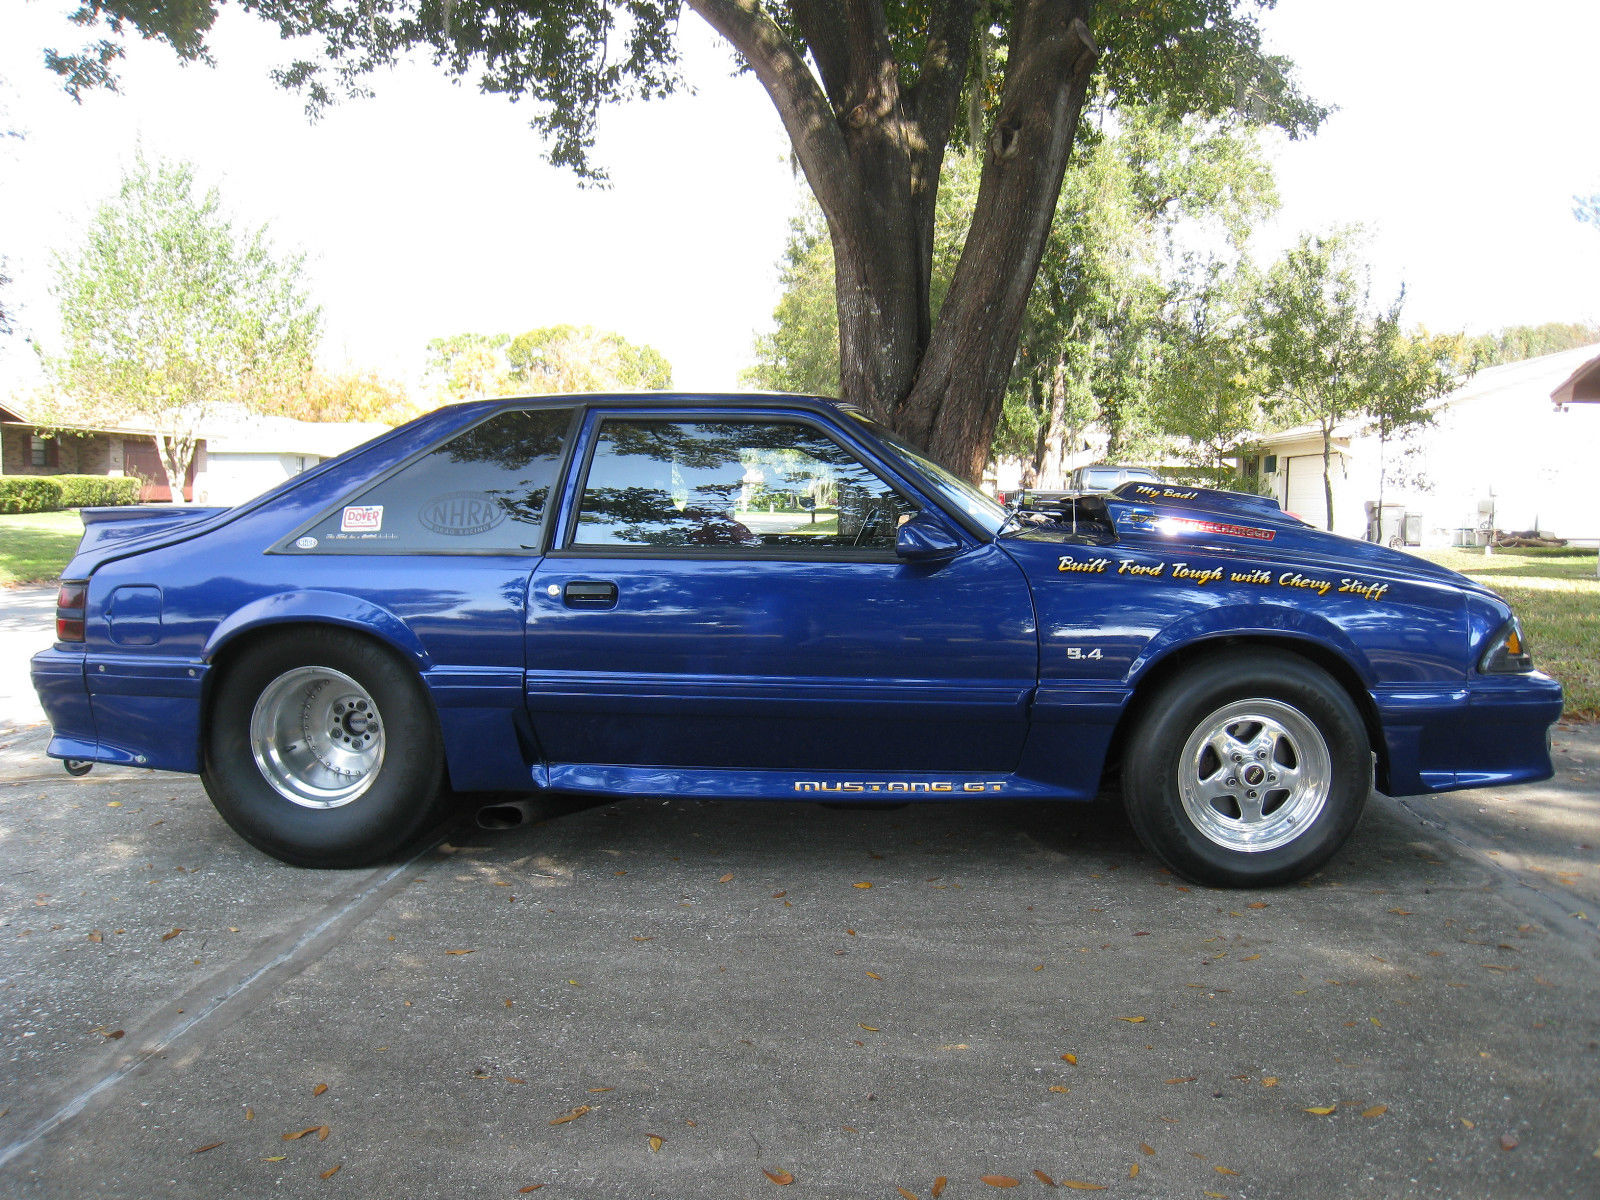 Pro Street Fox Body Mustang Rolling Chassic for sale in